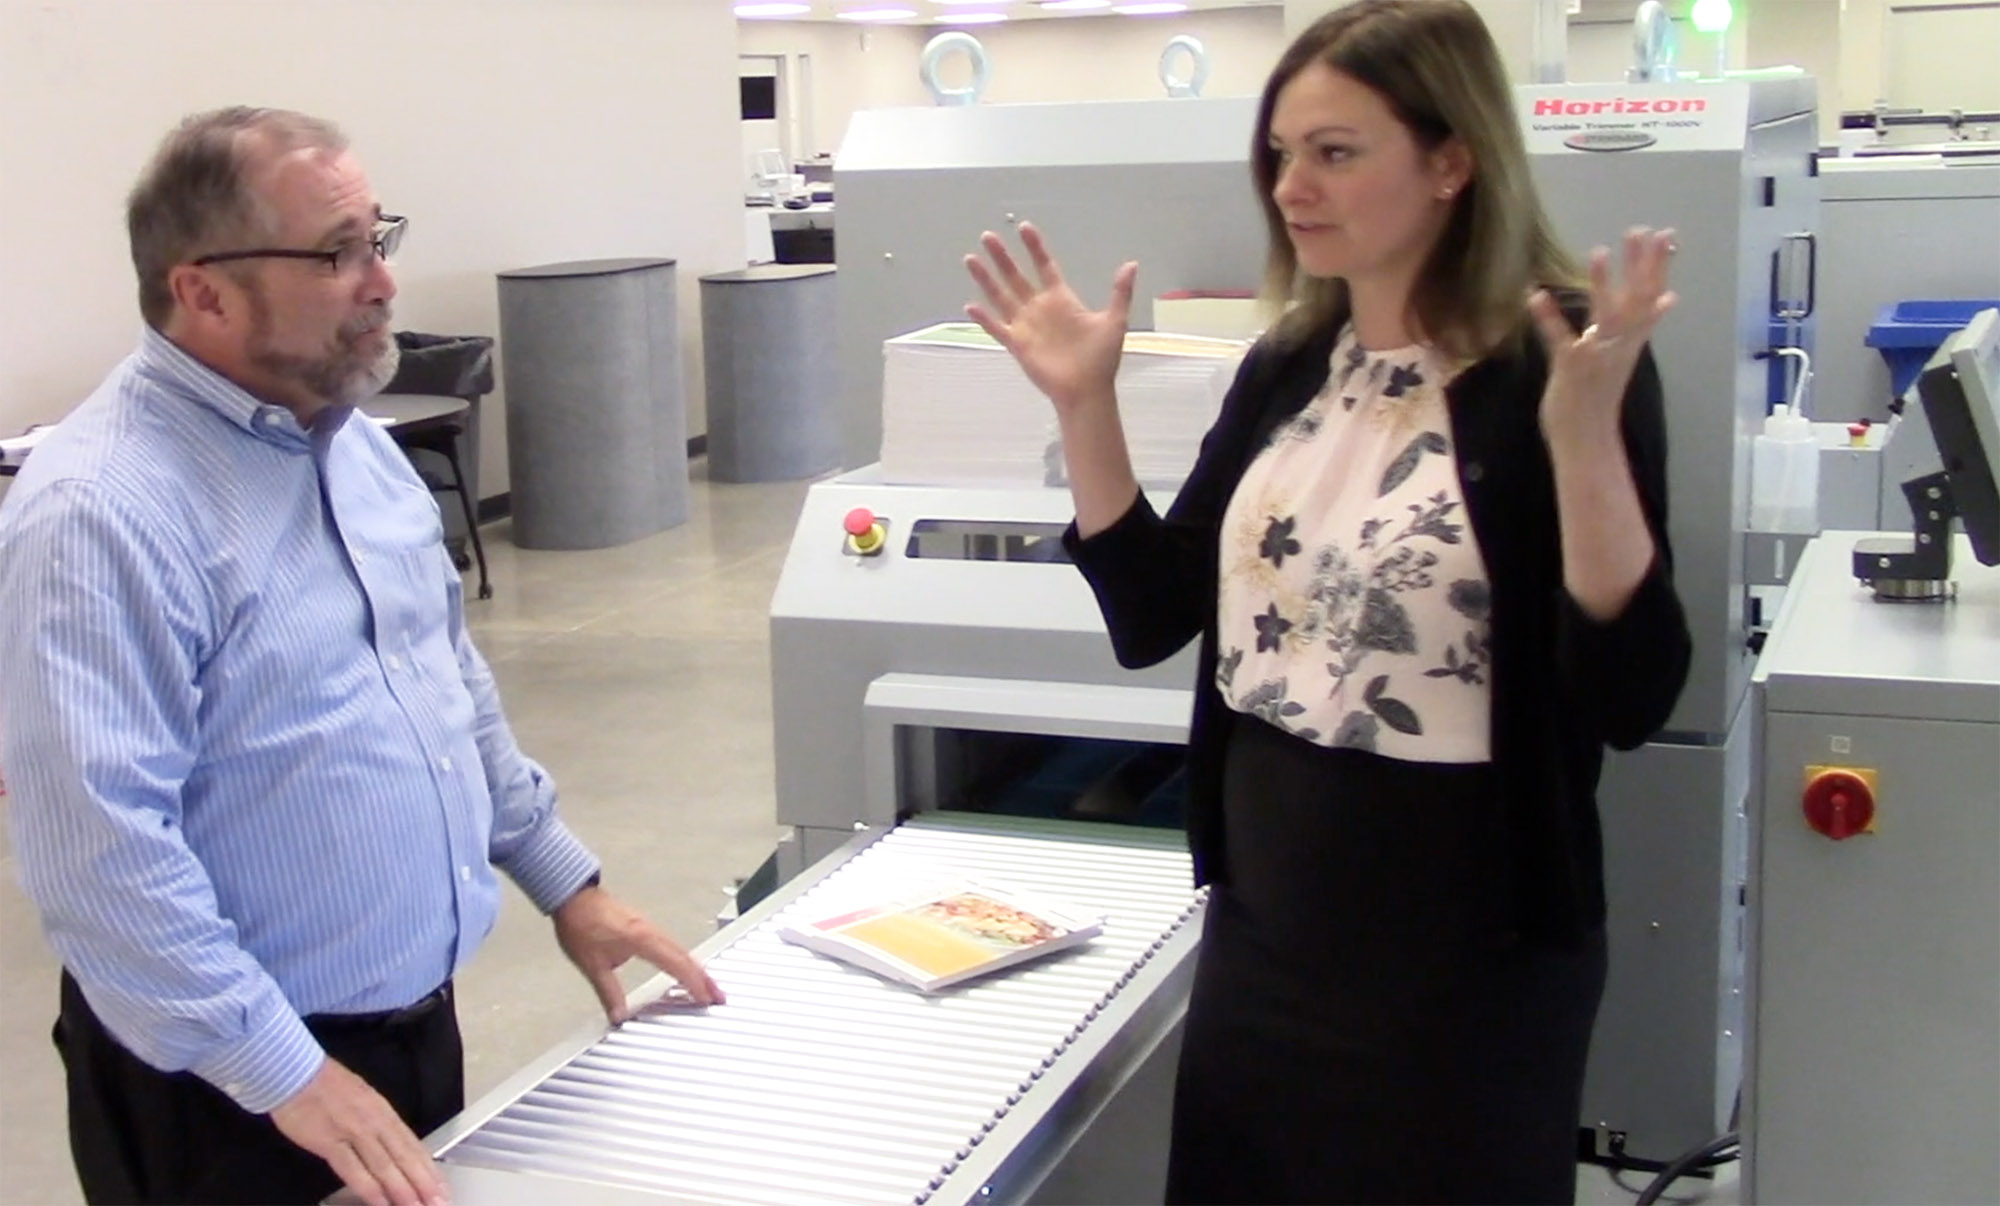 Smart Binding System Manufactures Fully-Automated Roll-to-Perfect Bound Variable Books with Ease